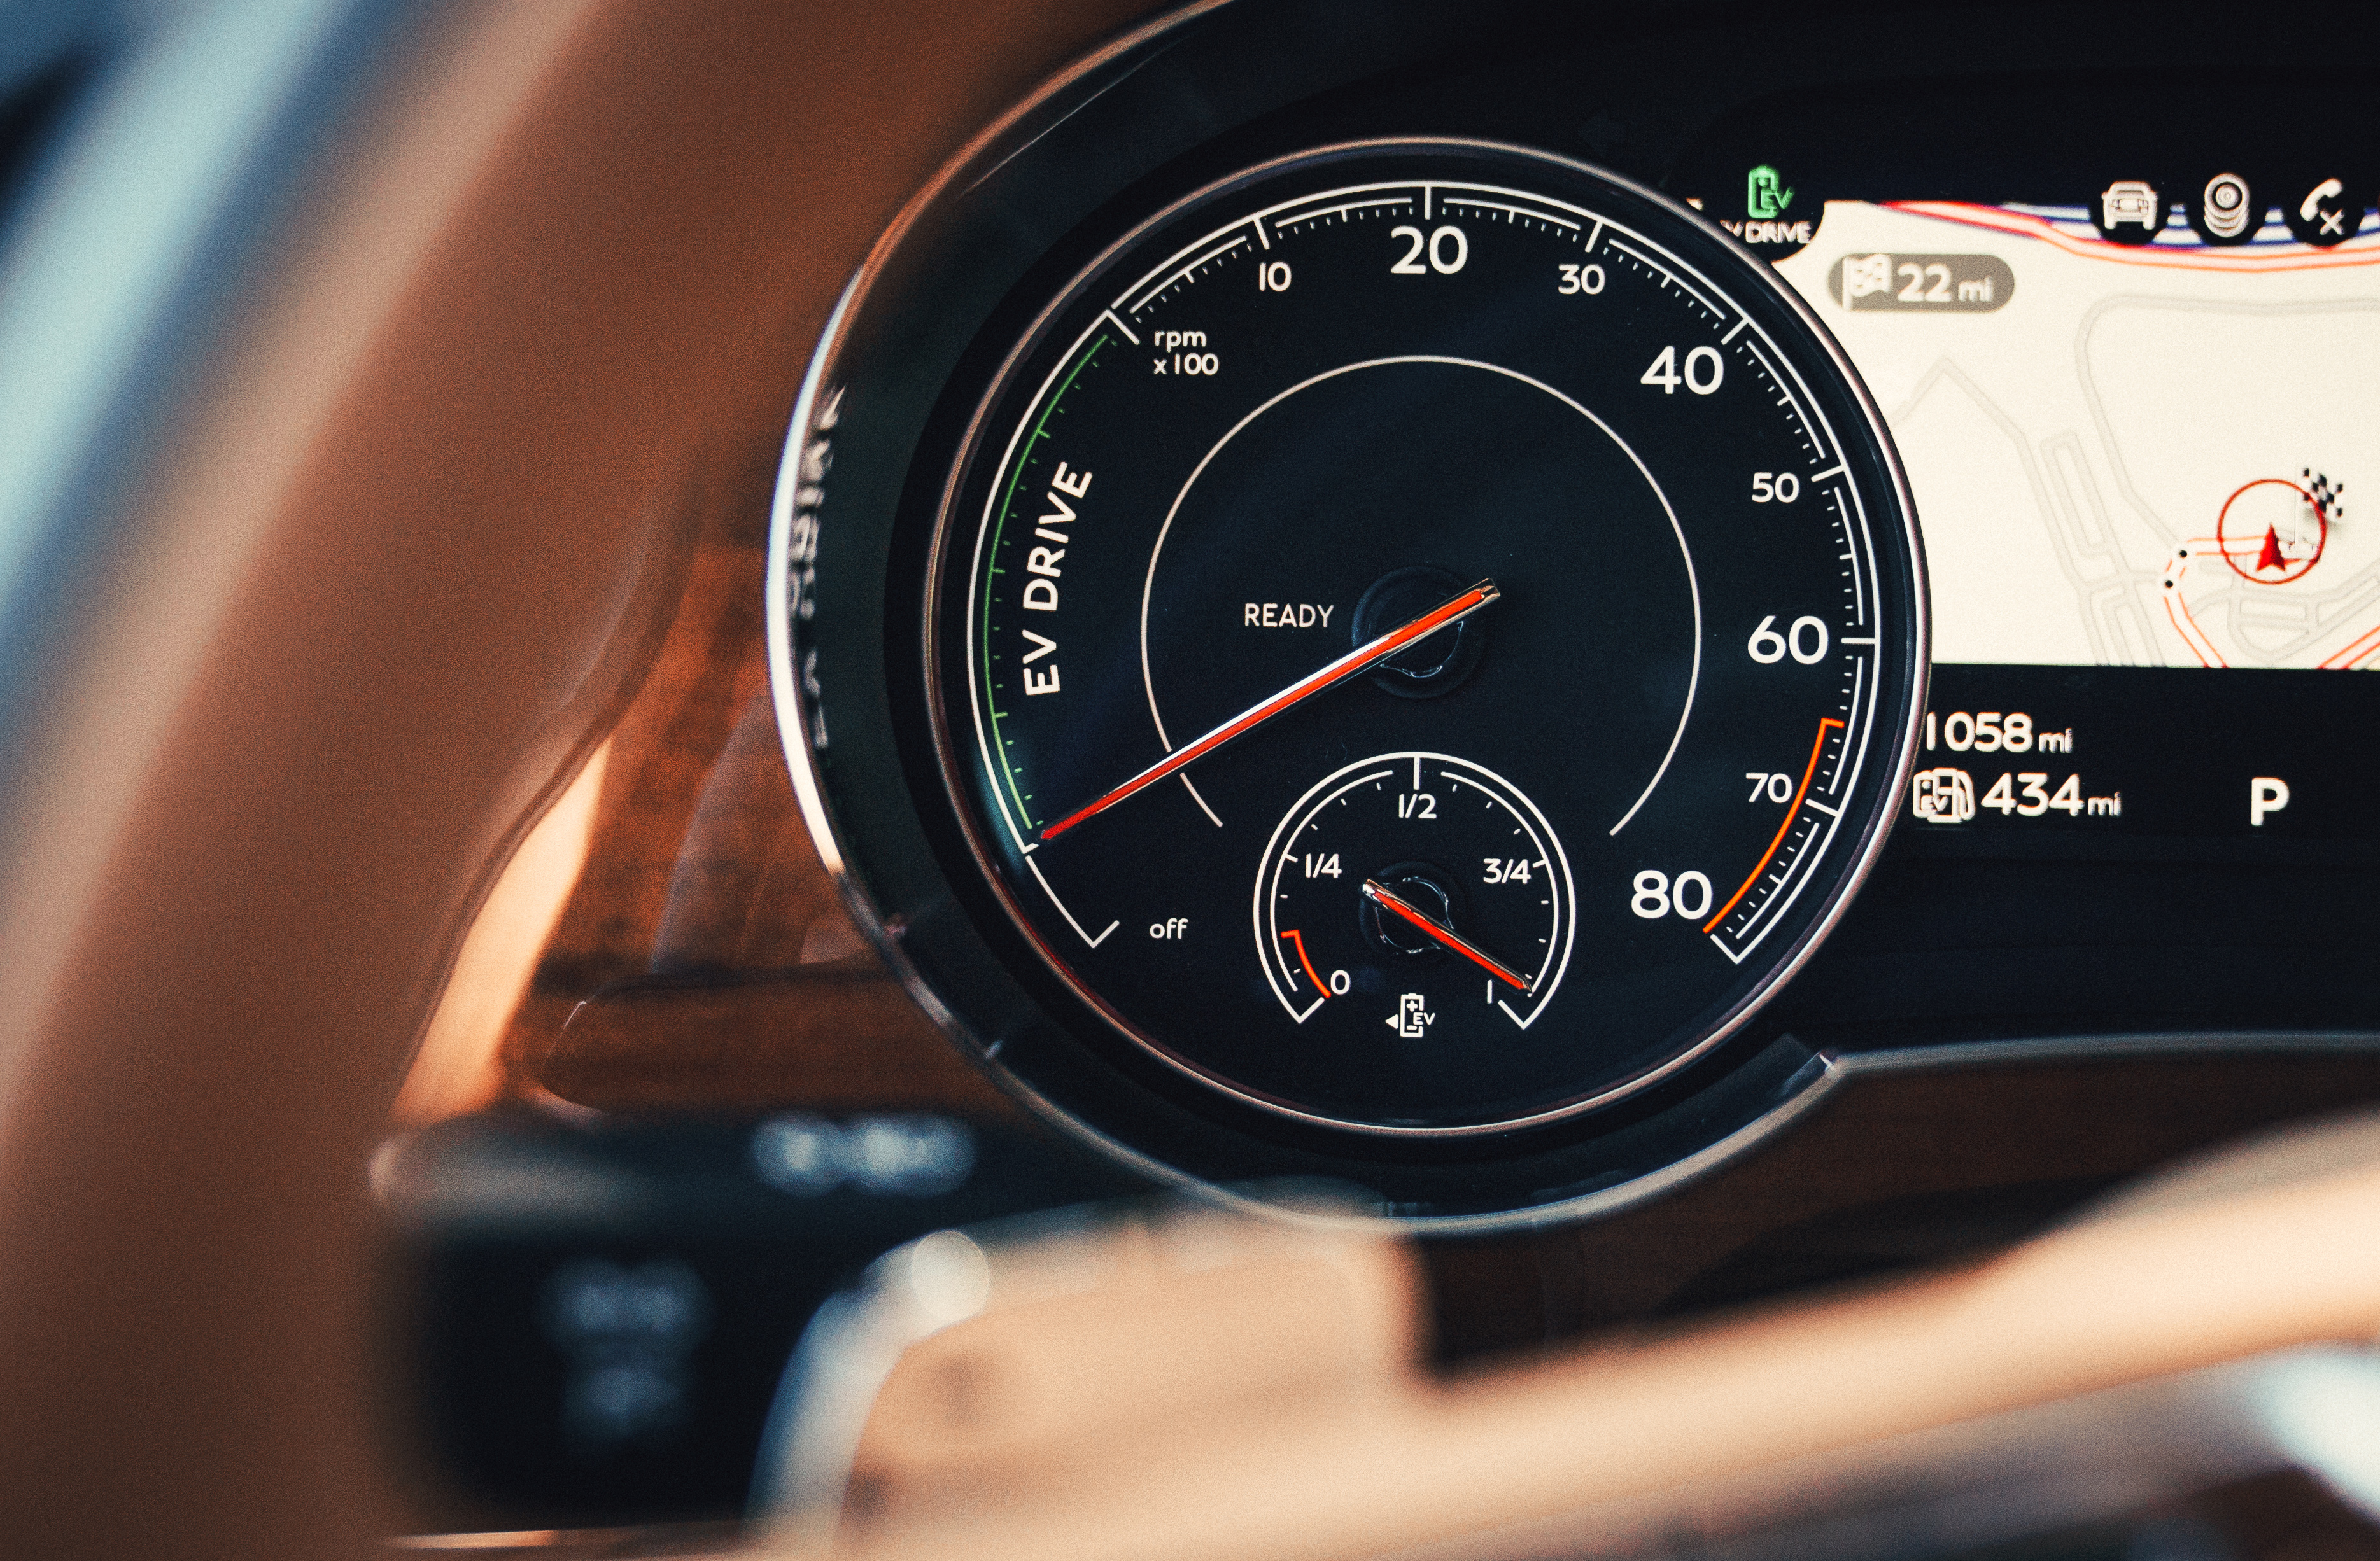 Unique hybrid-related dials are fitted to the Bentayga